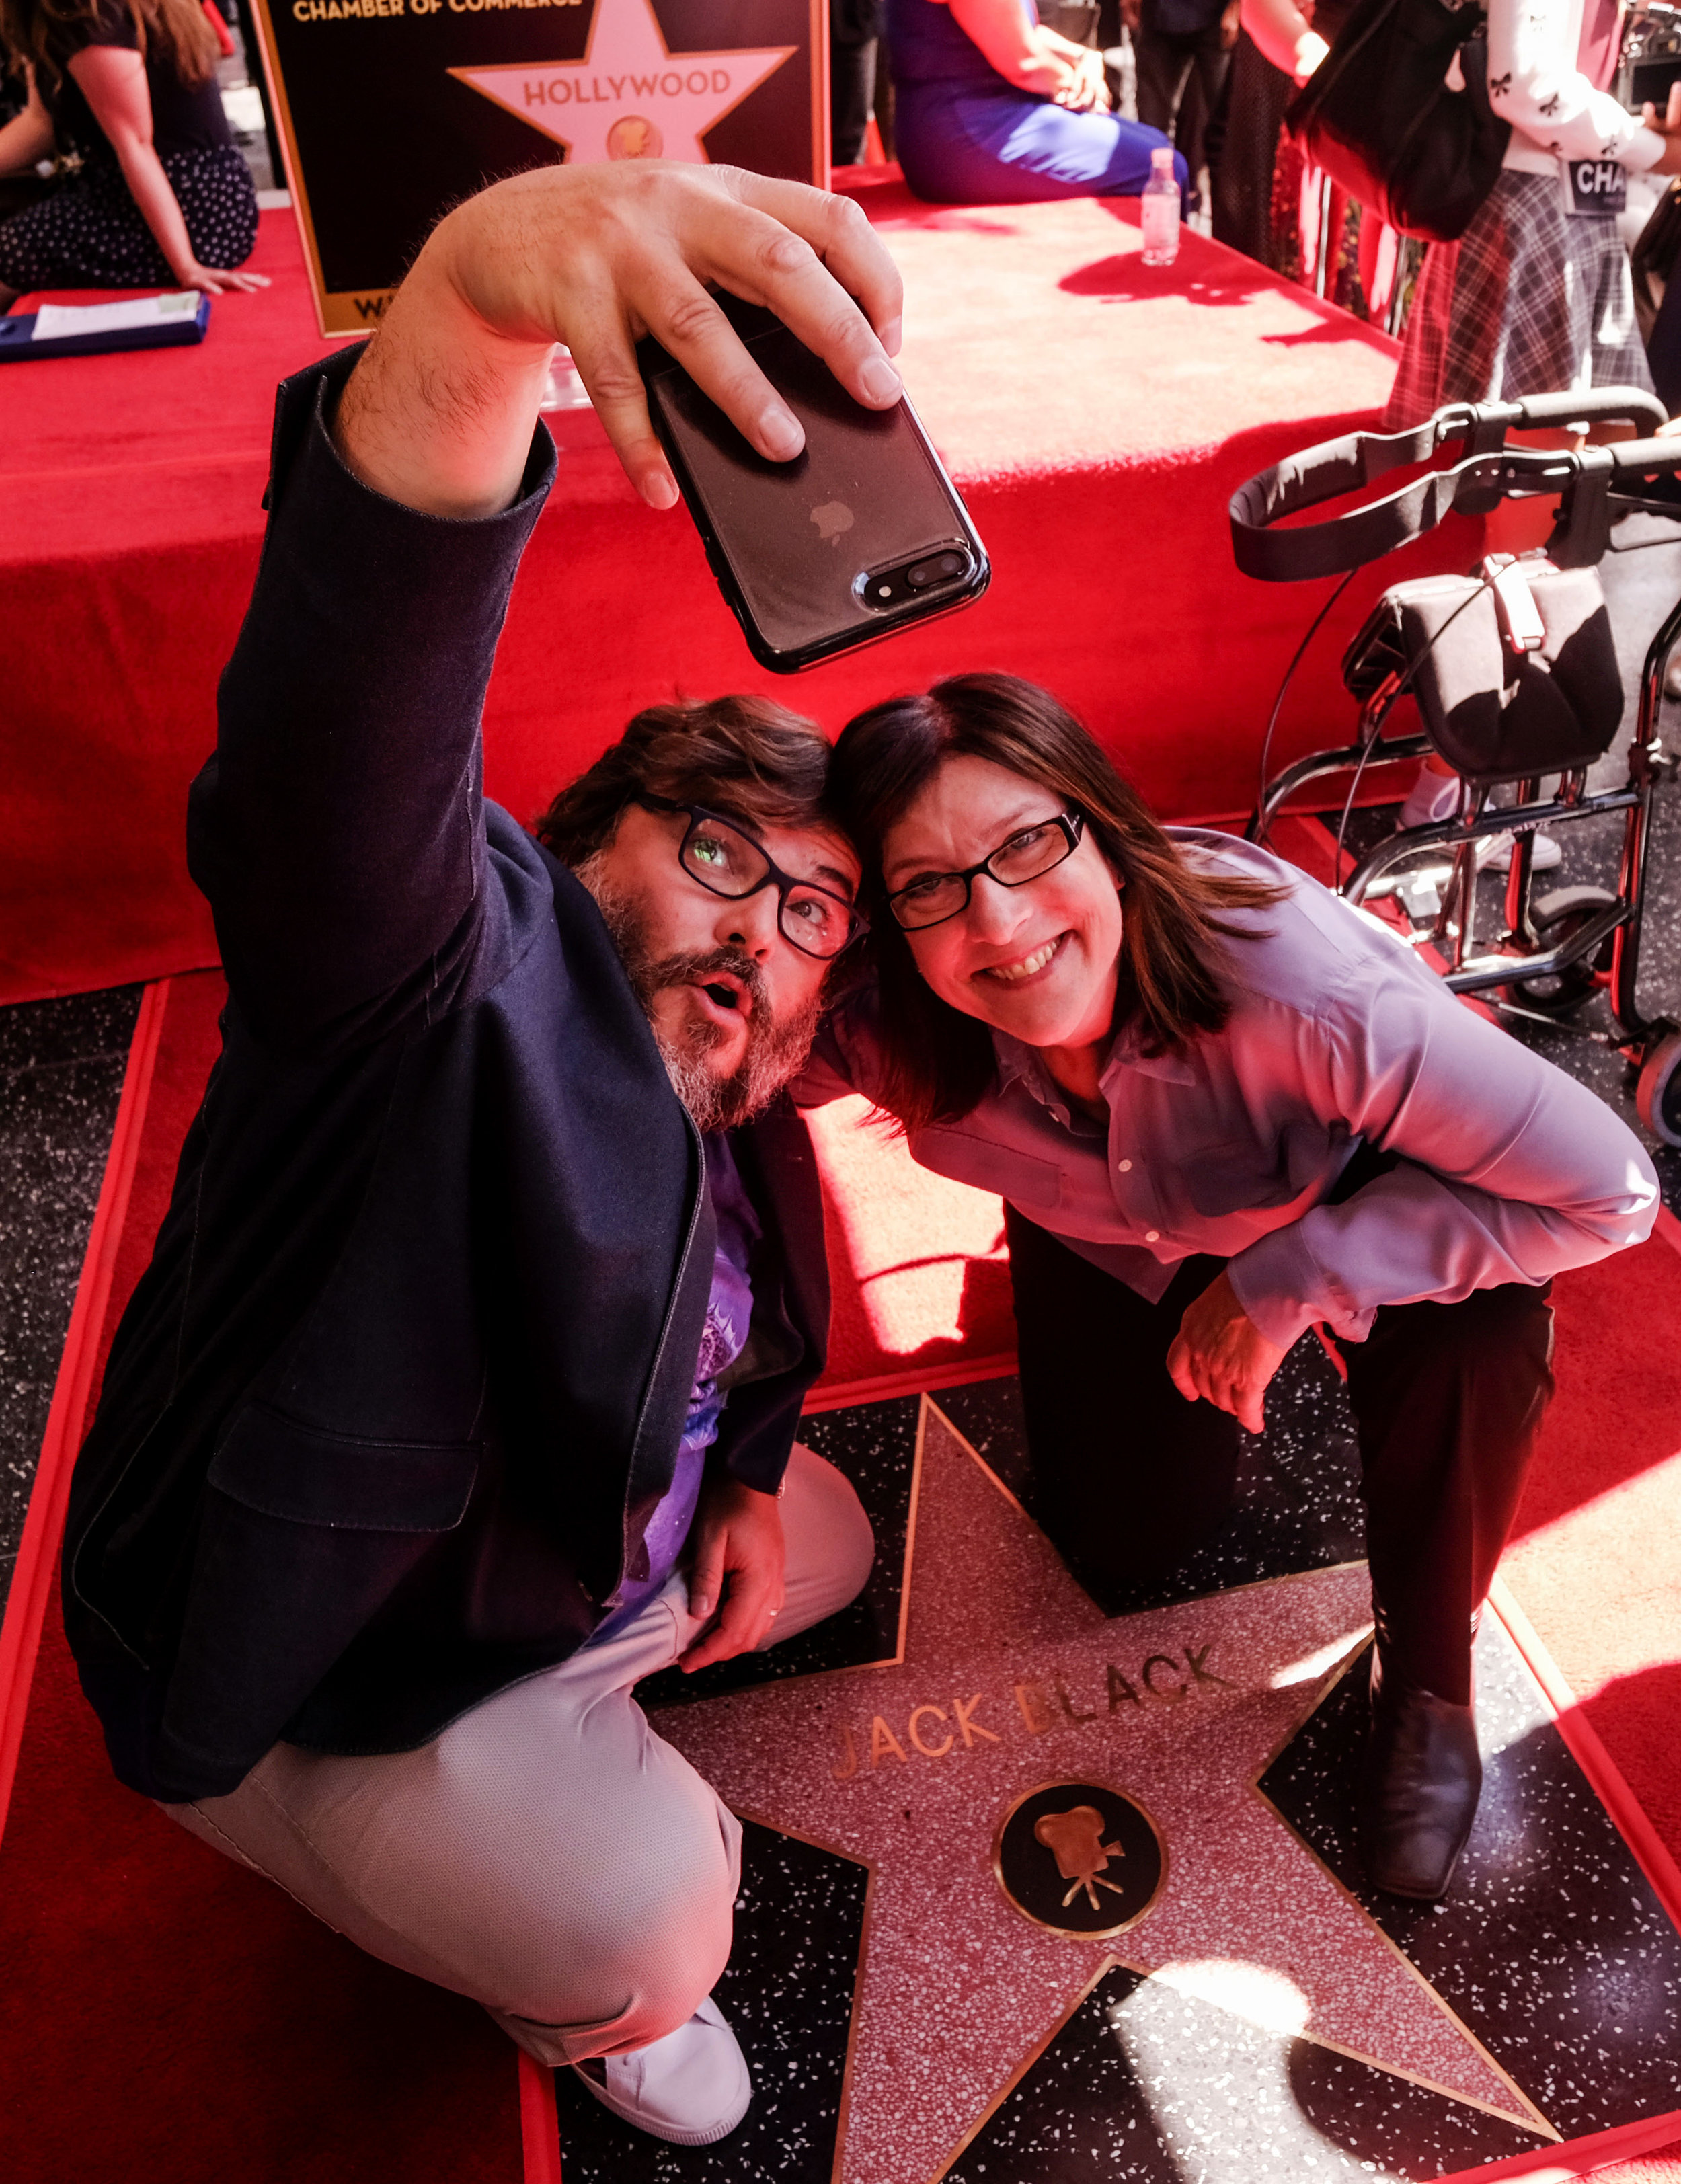 Actor Jack Black attends his star ceremony on the Hollywood Walk of Fame Star where he was the recipient of the 2,645th star on the Hollywood Walk of Fame in the category of Motion Pictures on September 18, 2018 in Los Angeles.